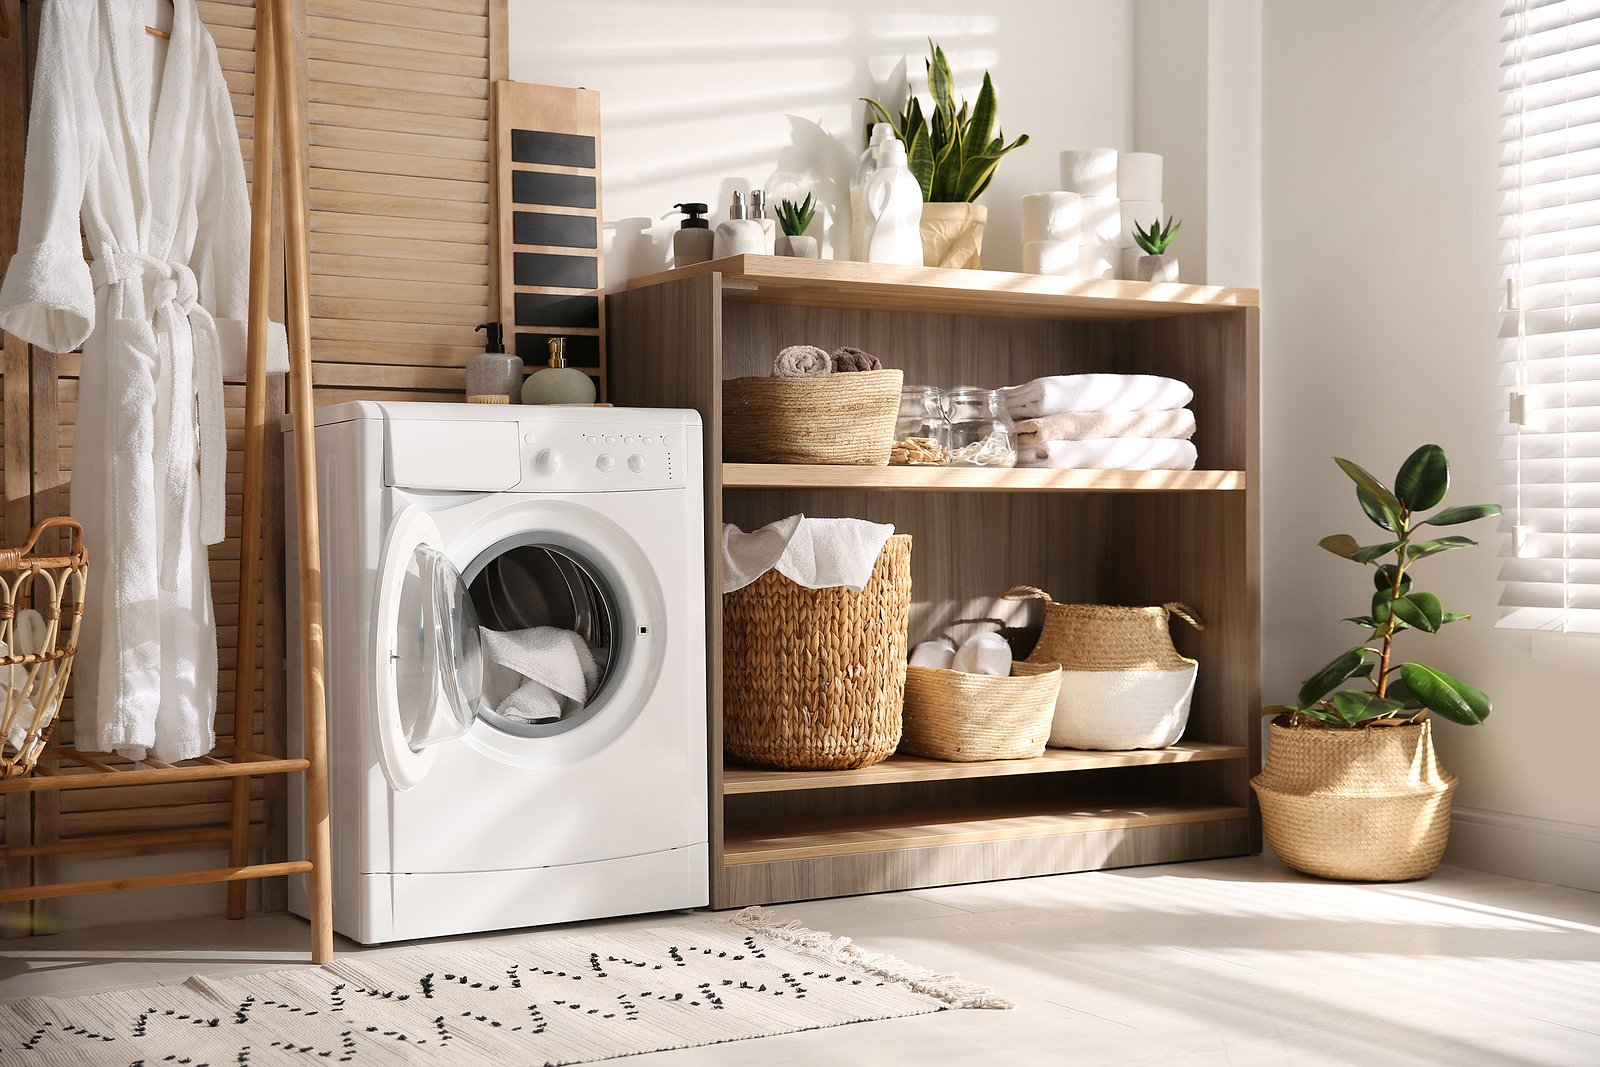 5 Ways to Make the Most of a Small Utility Room